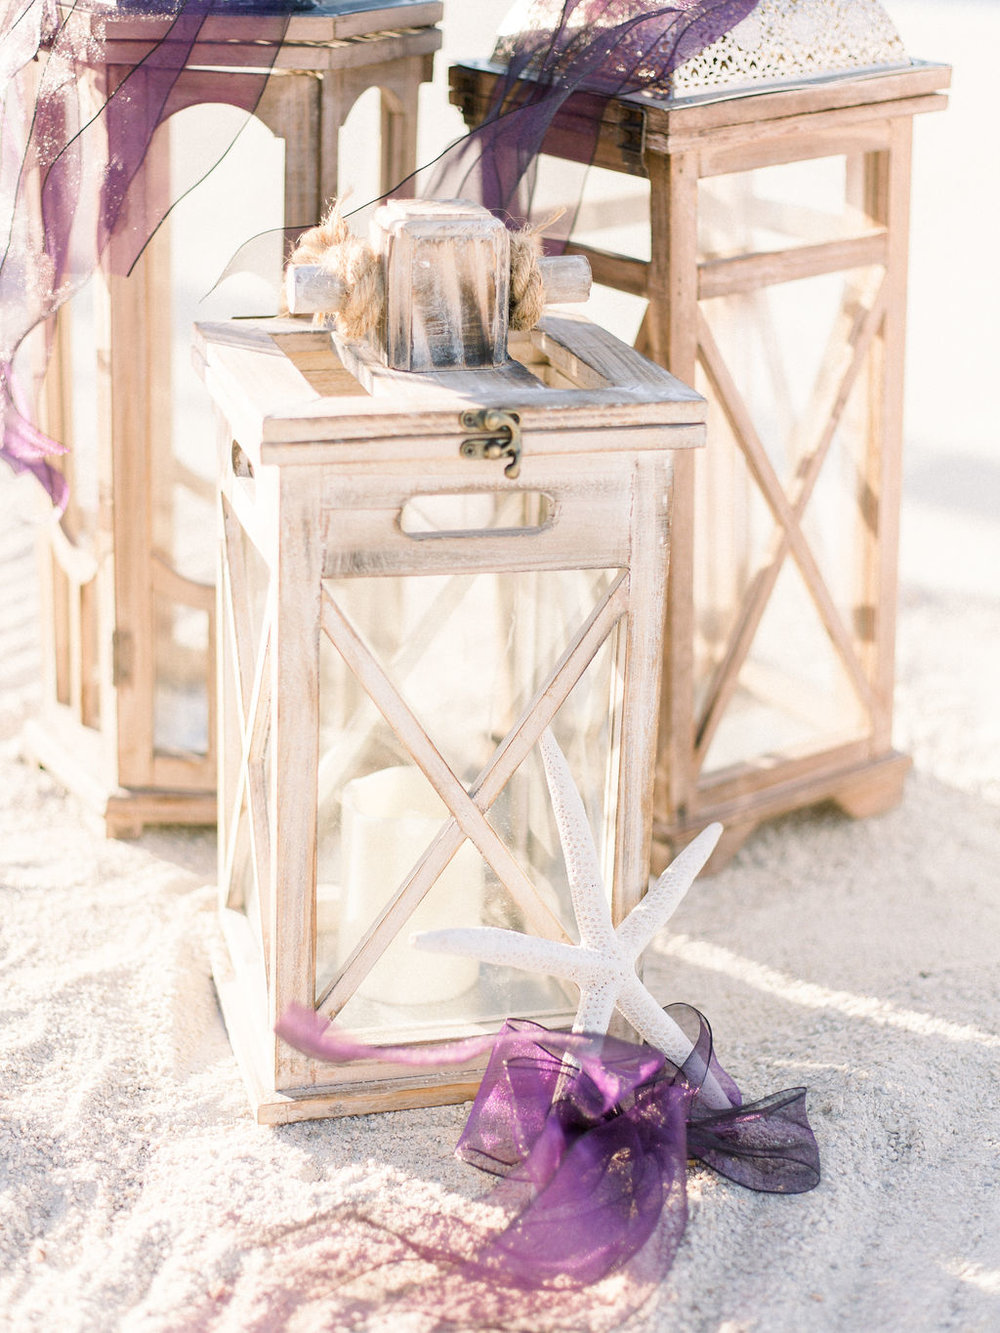 katie_graham_photography_wedding_photographer_jamestown_new_york_bemus_point_lakewood_marathon_florida_keys